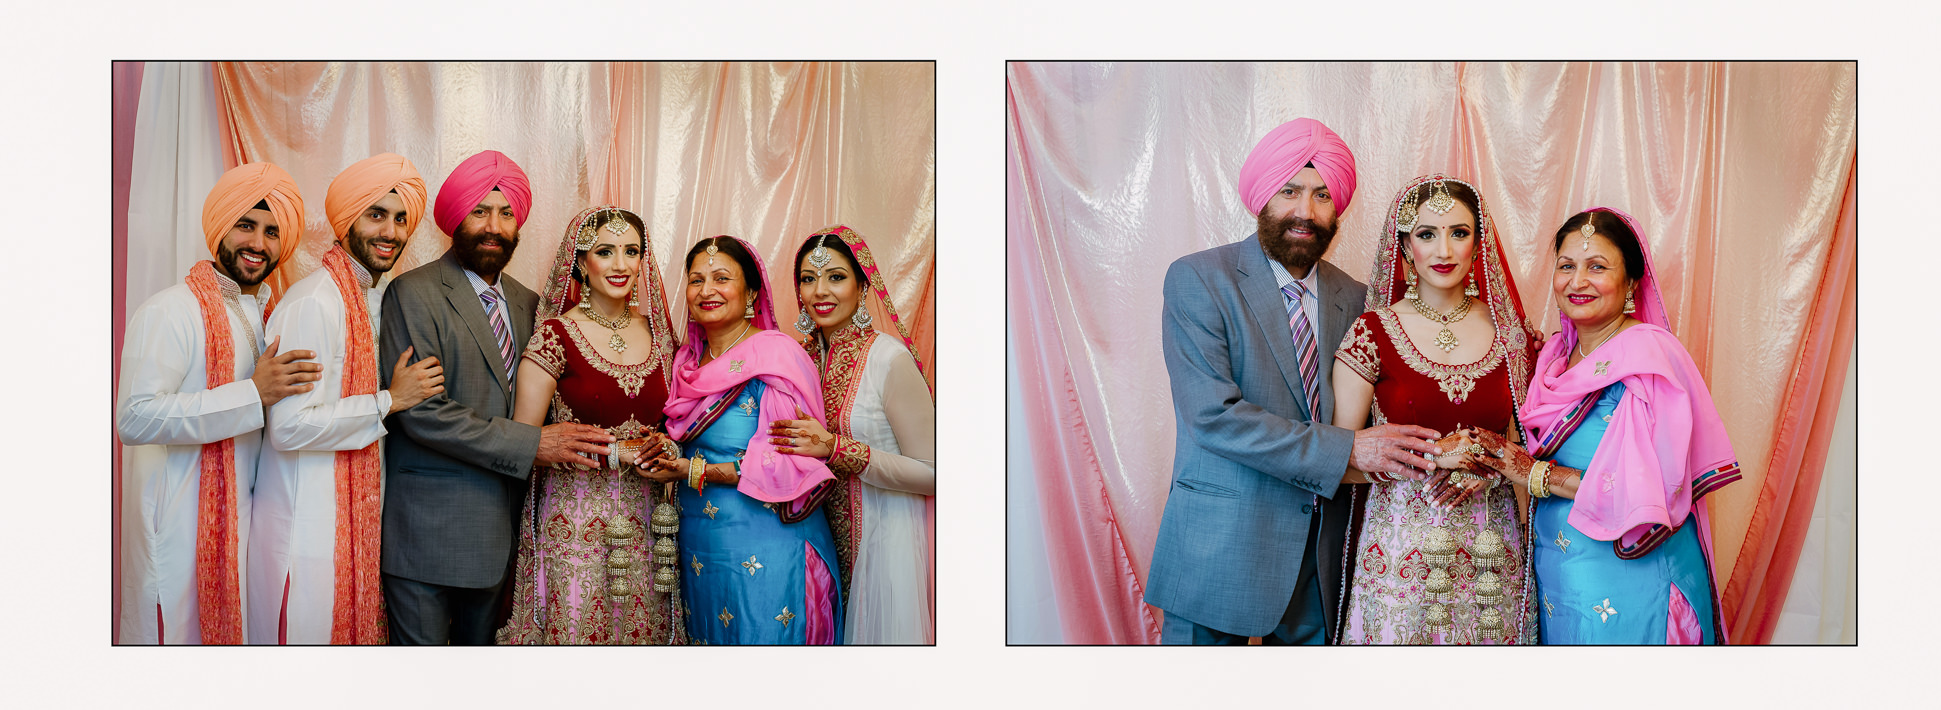 indian-wedding-photographer-sikh-9-of-43